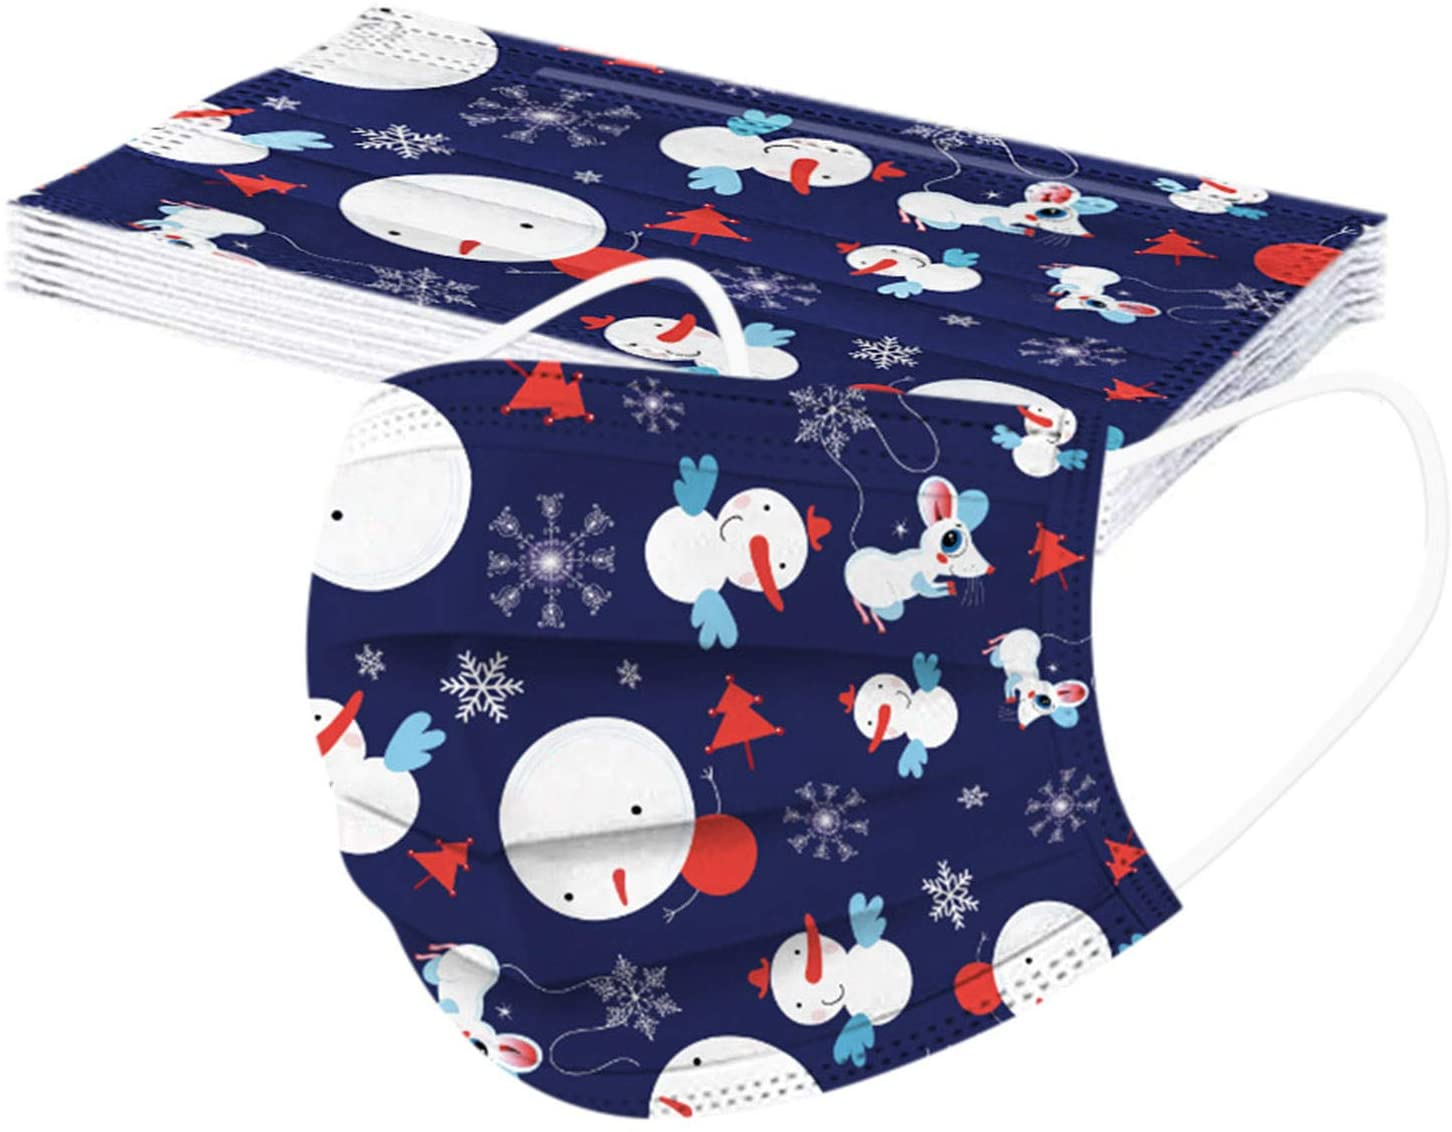 10PC Christmas Theme Disposable Face_Masks for Adult, 3 Ply Non-Woven Christmas Printed Pattern Cover for Christmas Party Atmosphere School Outdoor(C)